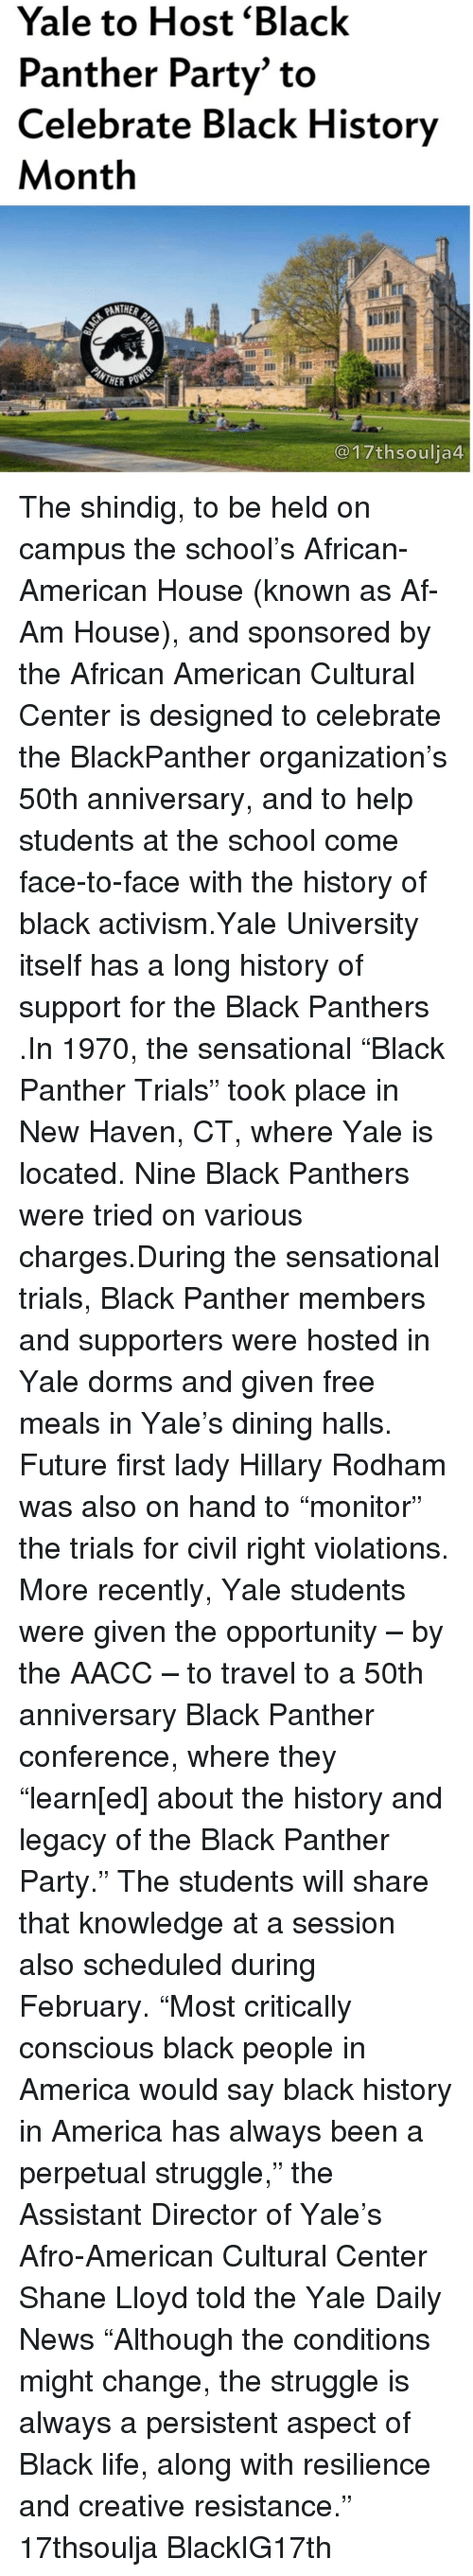 """Creativer: Yale to Host Black  Panther Party"""" to  Celebrate Black History  Month  PANTHER  MOTHER PO  @17thsoulja The shindig, to be held on campus the school's African-American House (known as Af-Am House), and sponsored by the African American Cultural Center is designed to celebrate the BlackPanther organization's 50th anniversary, and to help students at the school come face-to-face with the history of black activism.Yale University itself has a long history of support for the Black Panthers .In 1970, the sensational """"Black Panther Trials"""" took place in New Haven, CT, where Yale is located. Nine Black Panthers were tried on various charges.During the sensational trials, Black Panther members and supporters were hosted in Yale dorms and given free meals in Yale's dining halls. Future first lady Hillary Rodham was also on hand to """"monitor"""" the trials for civil right violations. More recently, Yale students were given the opportunity – by the AACC – to travel to a 50th anniversary Black Panther conference, where they """"learn[ed] about the history and legacy of the Black Panther Party."""" The students will share that knowledge at a session also scheduled during February. """"Most critically conscious black people in America would say black history in America has always been a perpetual struggle,"""" the Assistant Director of Yale's Afro-American Cultural Center Shane Lloyd told the Yale Daily News """"Although the conditions might change, the struggle is always a persistent aspect of Black life, along with resilience and creative resistance."""" 17thsoulja BlackIG17th"""